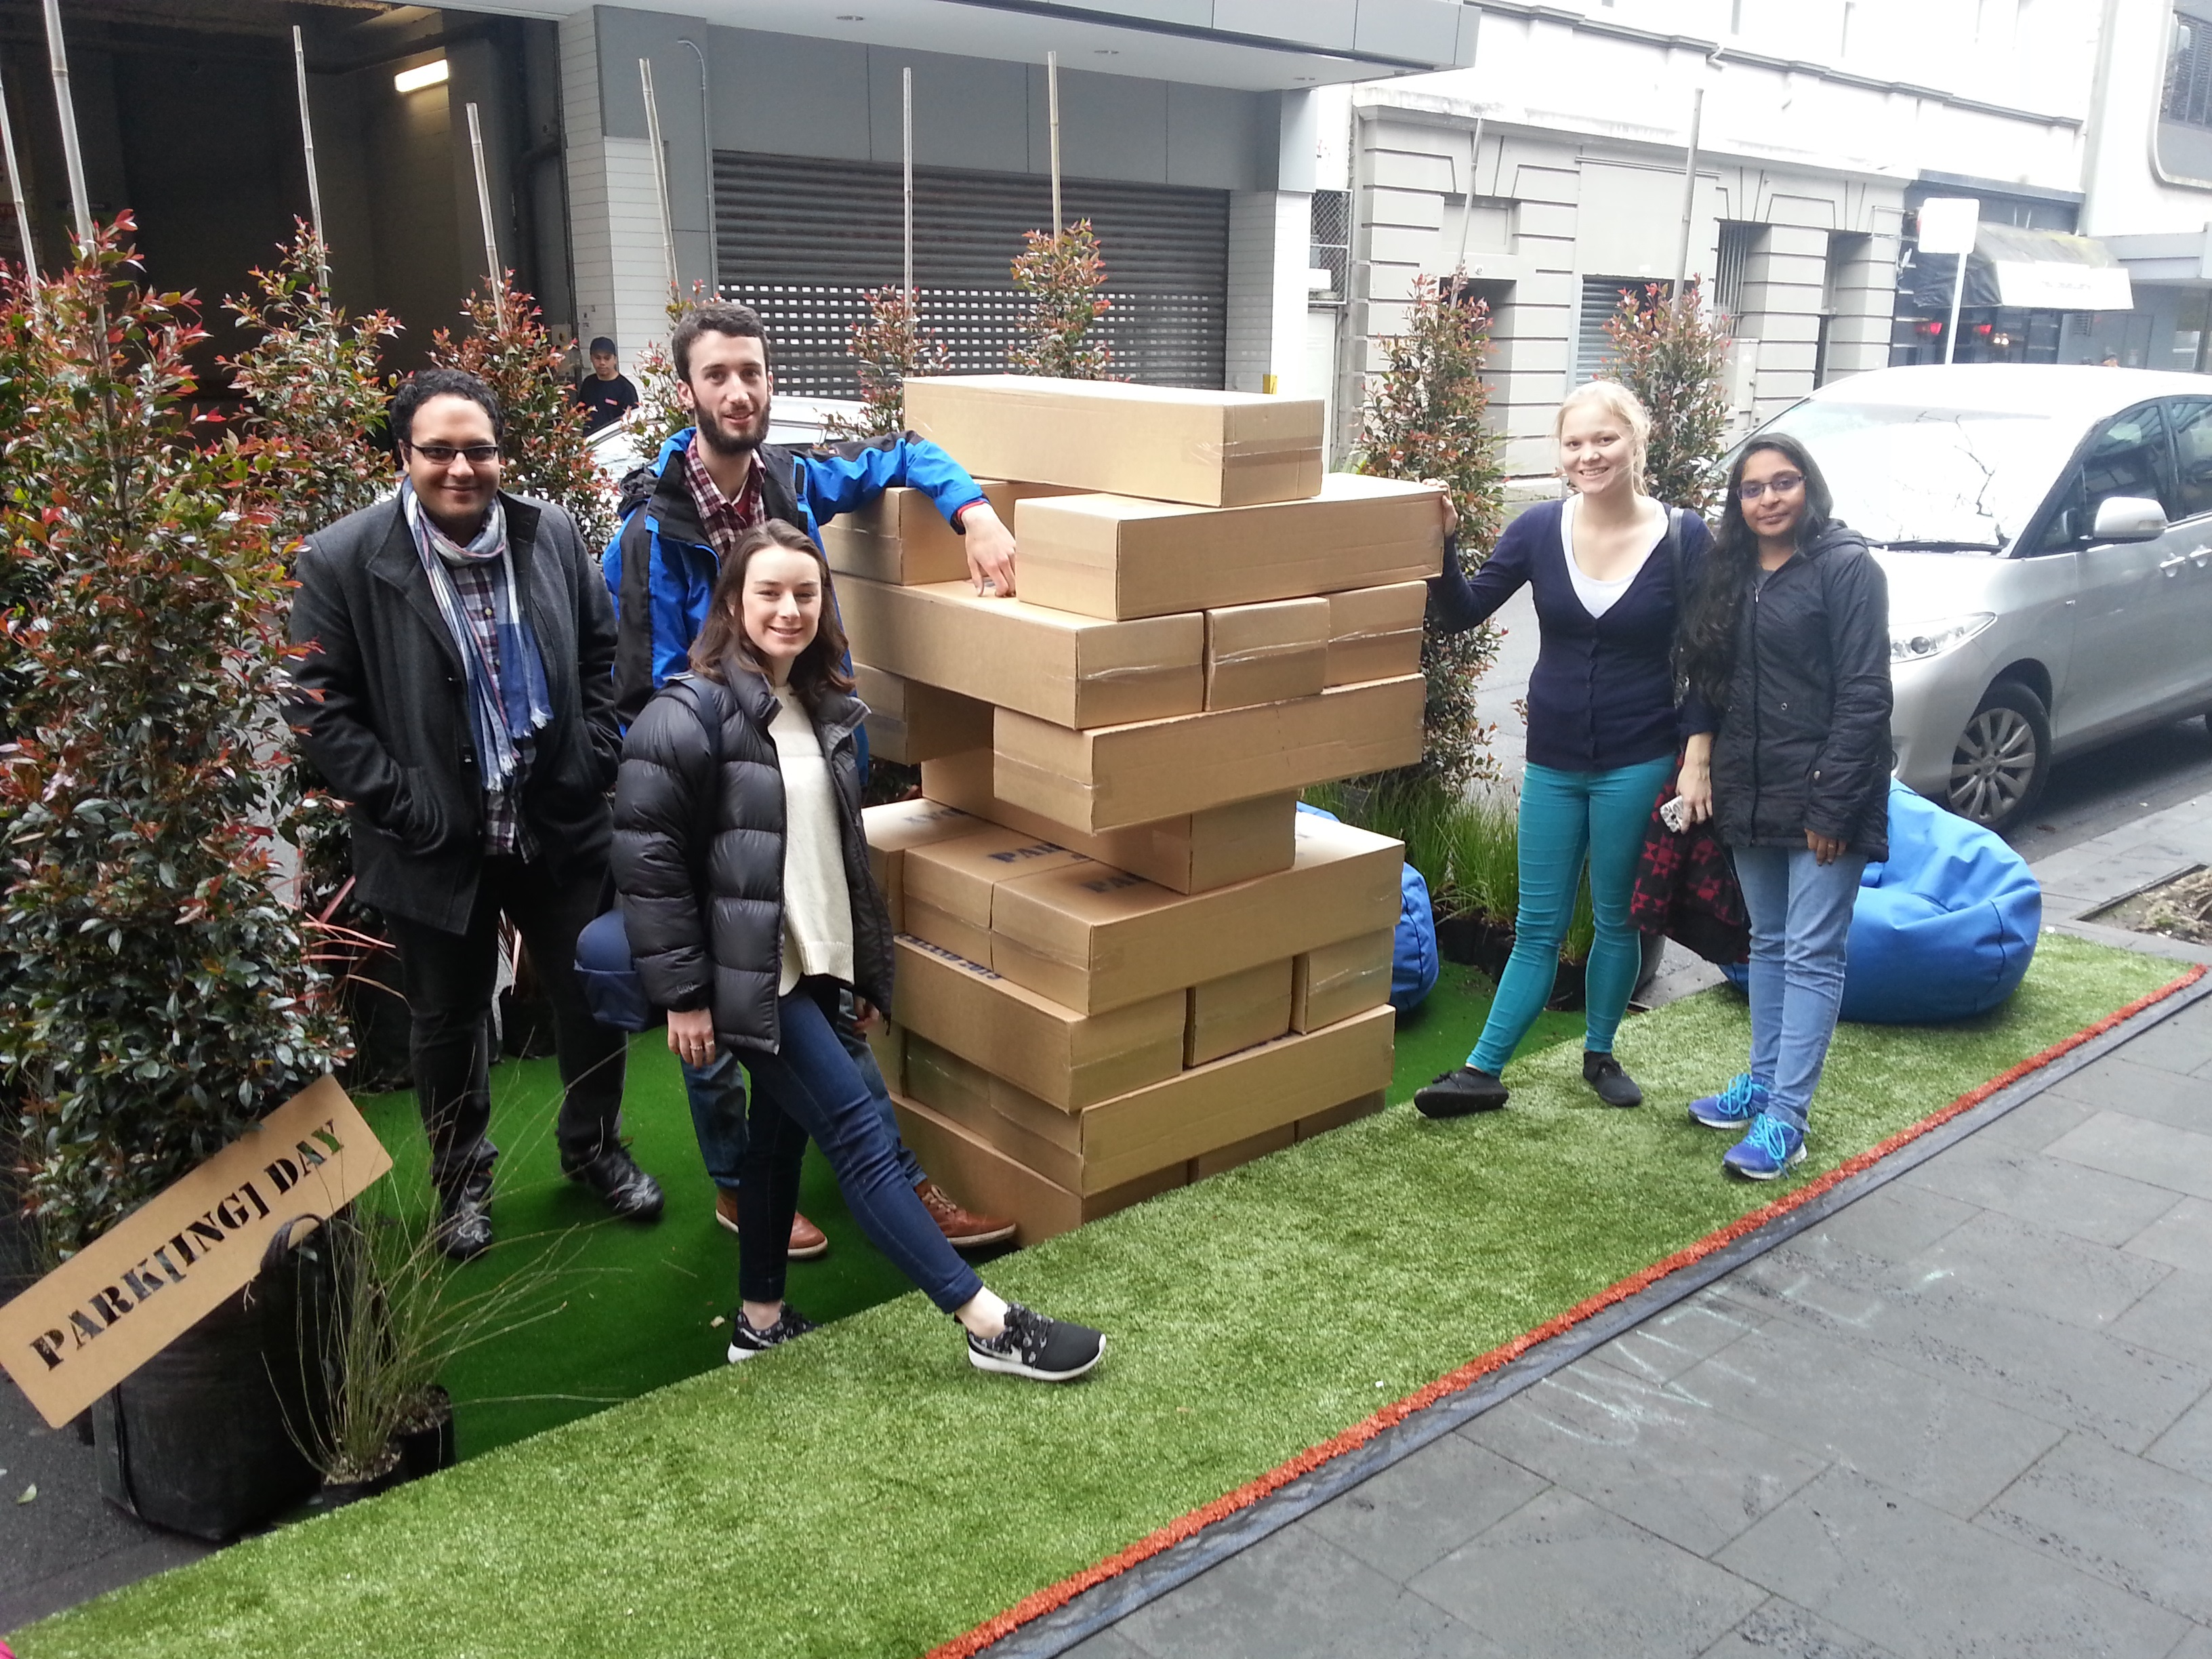 Park(ing) day 2015 temporary people places